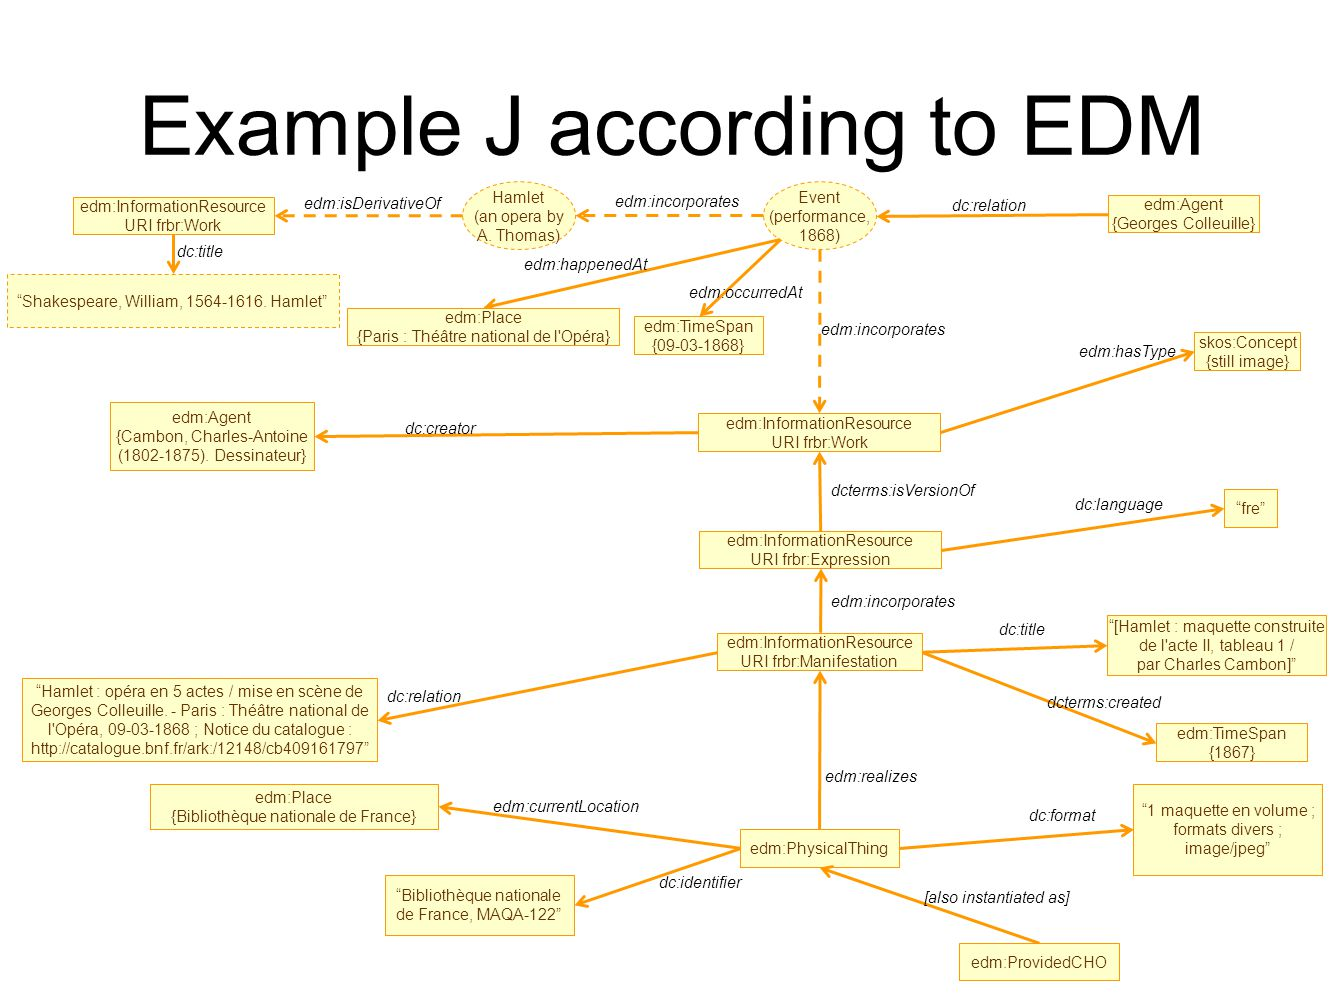 Example J according to EDM edm:InformationResource URI frbr:Work fre dc:language edm:Agent {Cambon, Charles-Antoine (1802-1875).